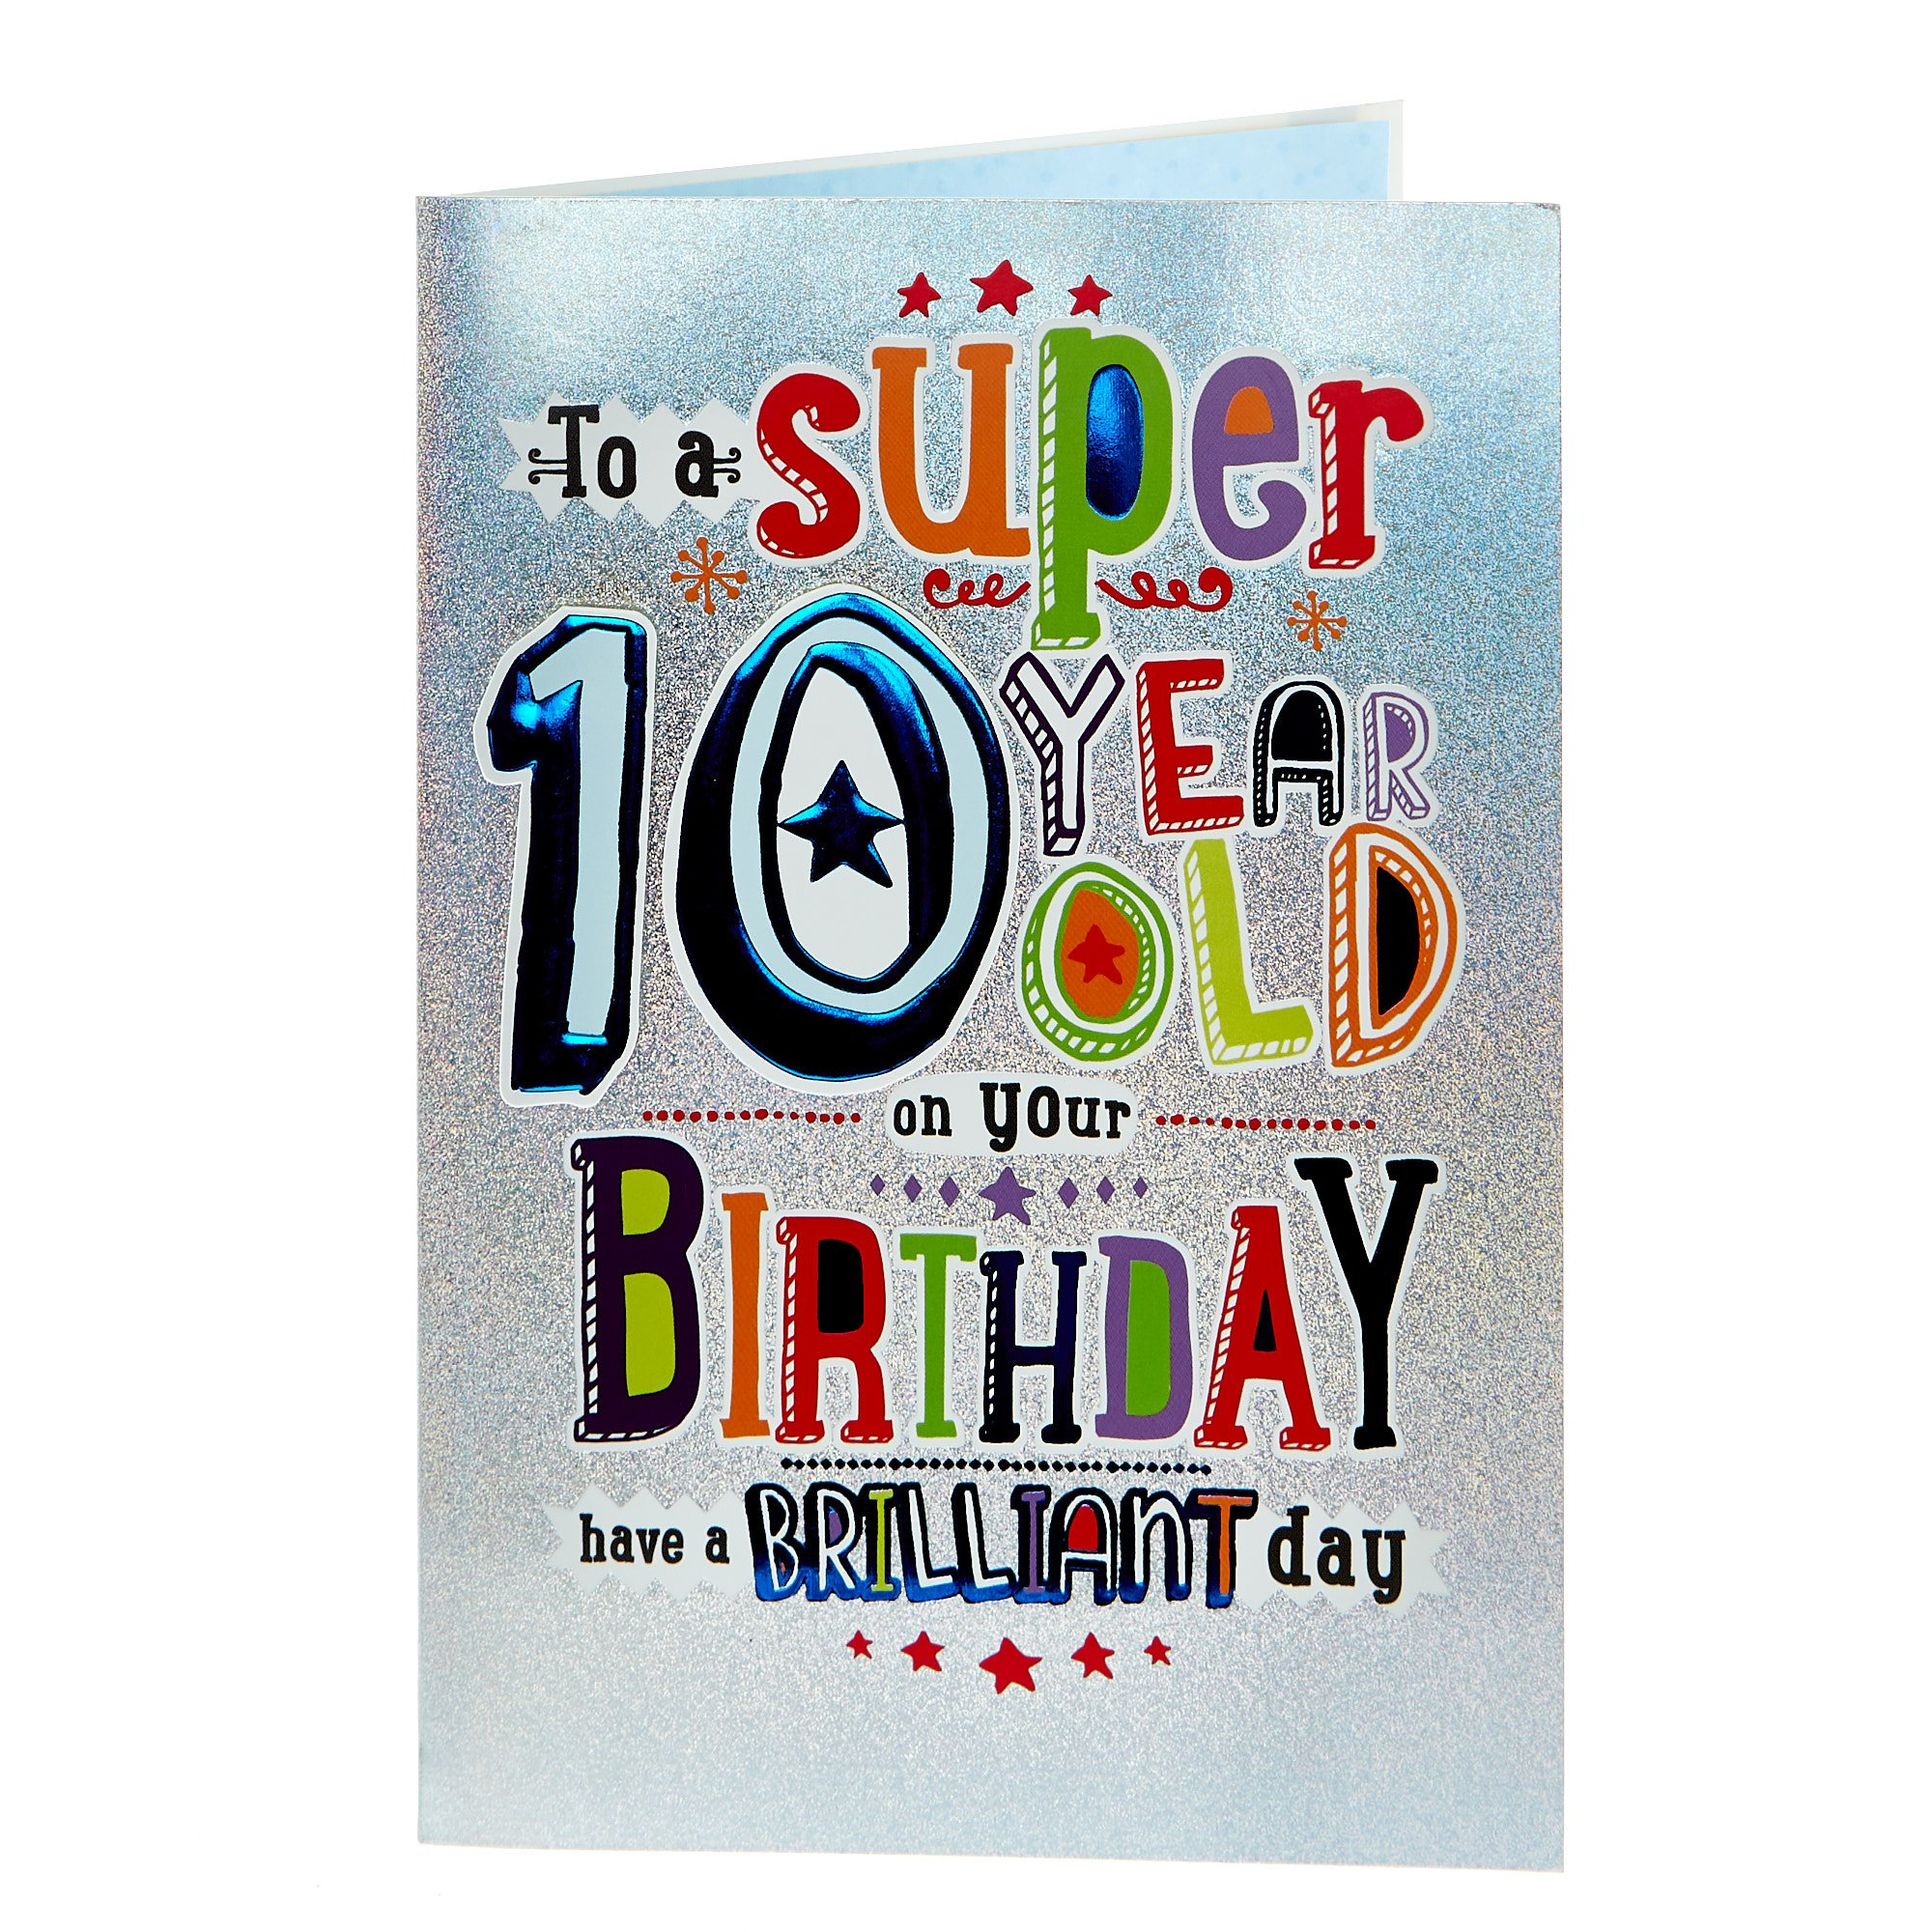 Buy 10th Birthday Card - Have A Brilliant Day for GBP 0.79 ...